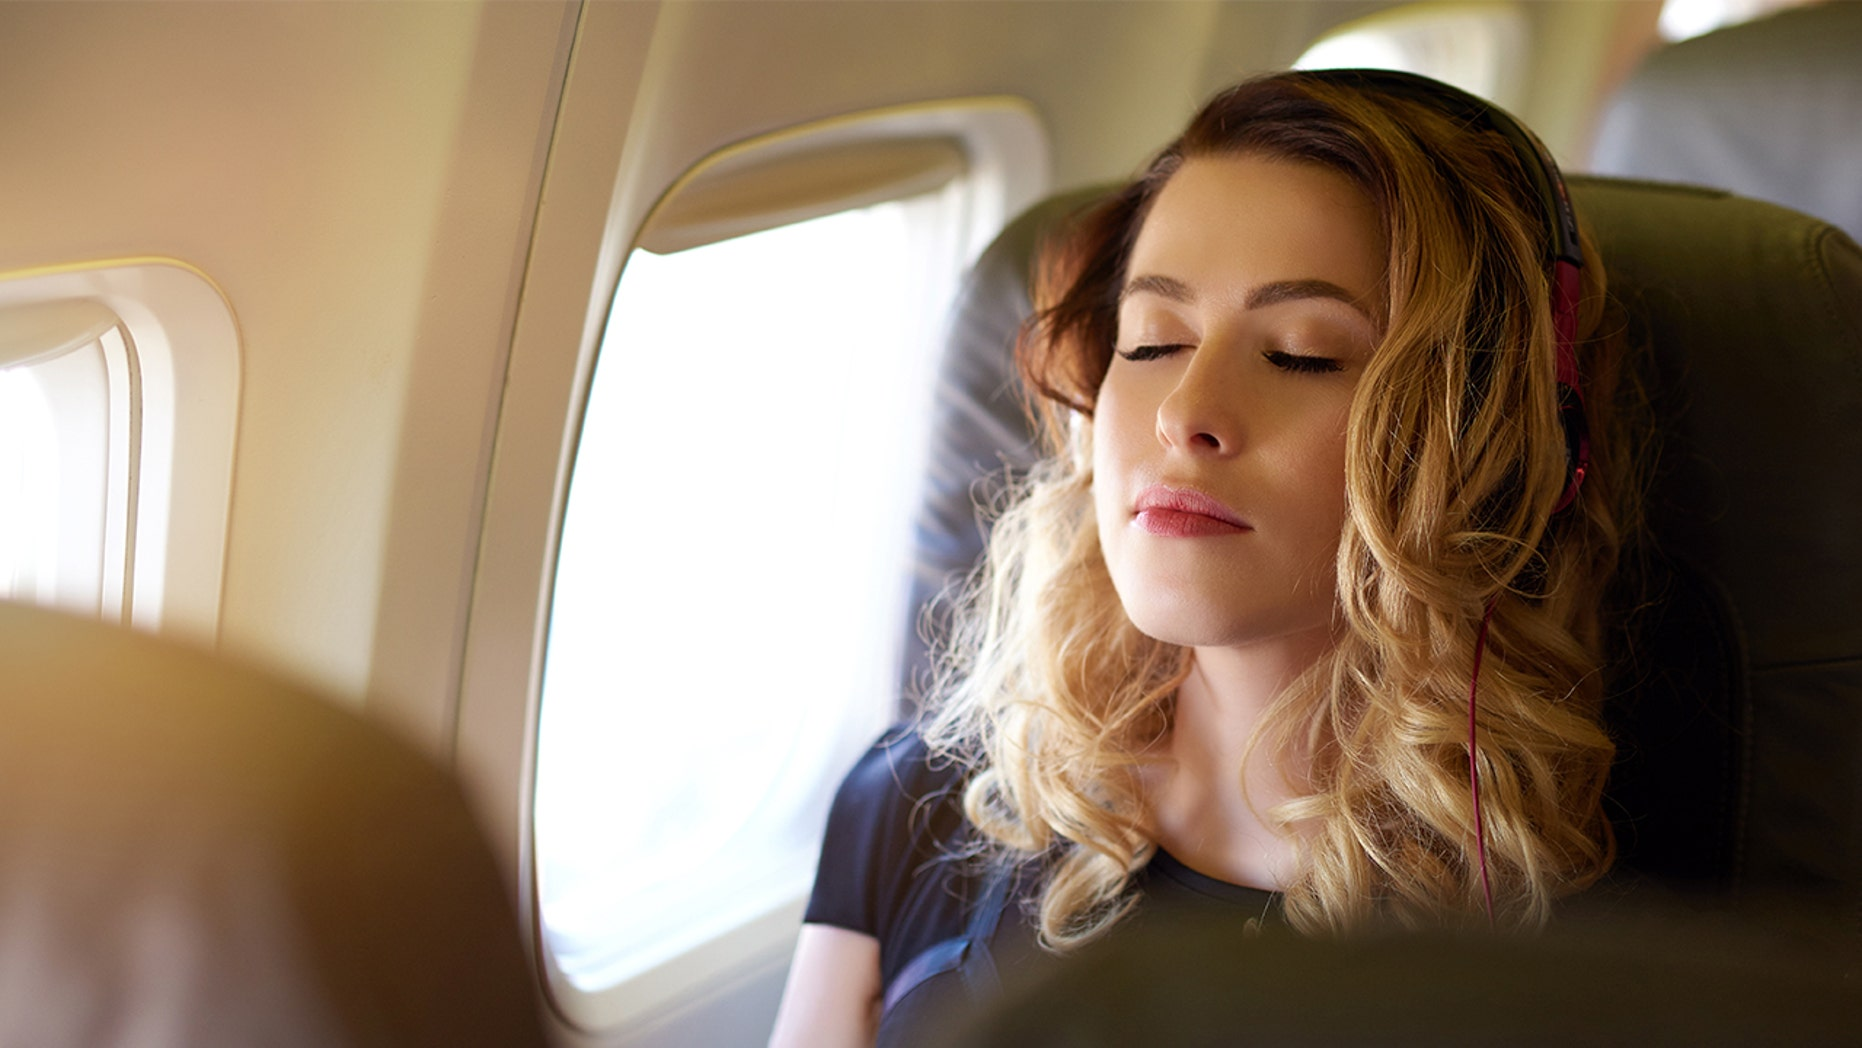 Sleeping during takeoff and landing can be hazardous to your health